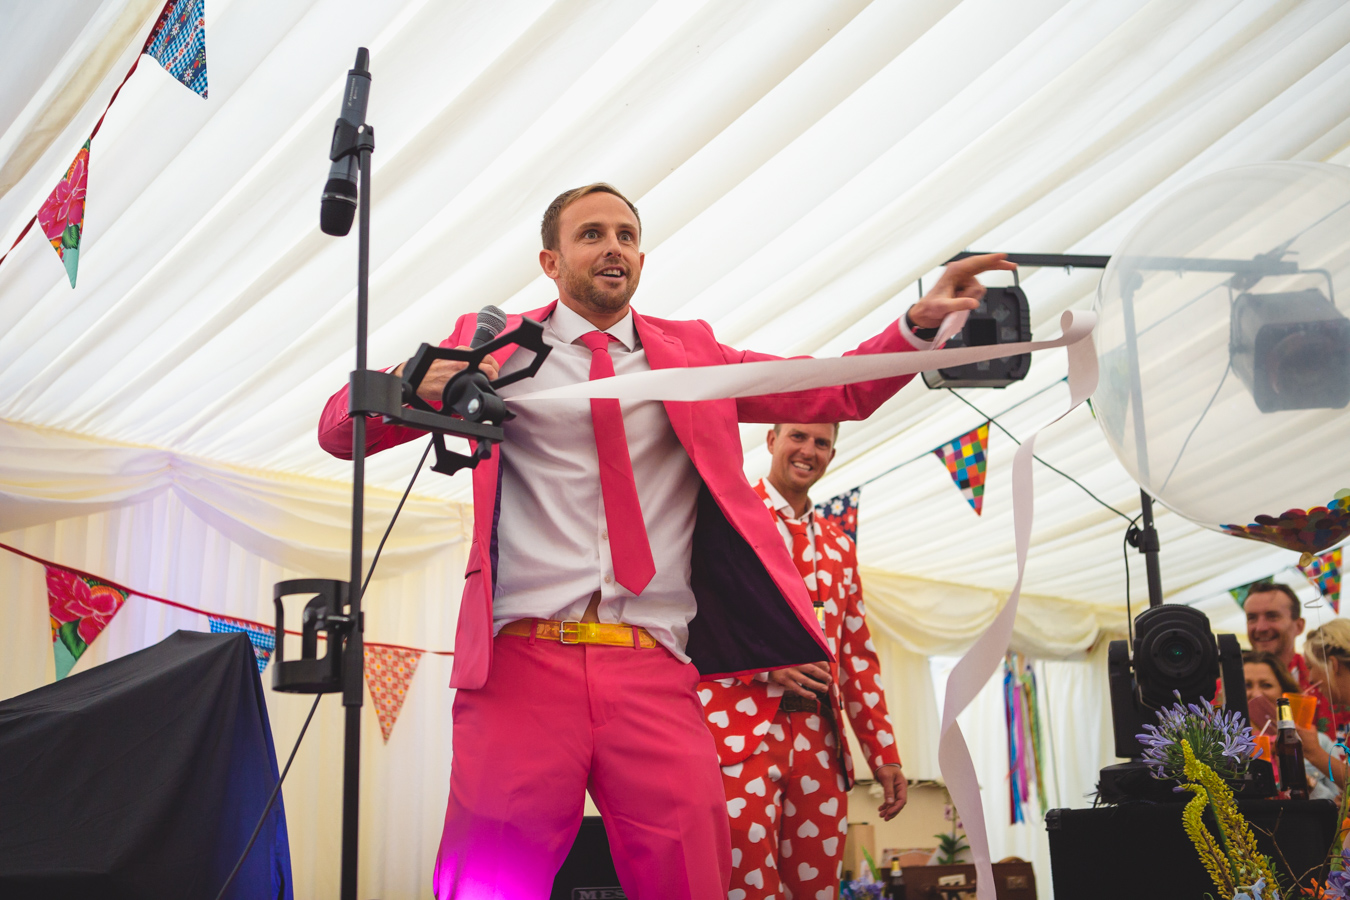 One of a set of images taken at this Destination Wedding of Jo and Steve, Jersey The Channel islands. Hilarious Best Man Speech dressed in pink Opposuit. Photography By Matt Porteous & Max Burnett.